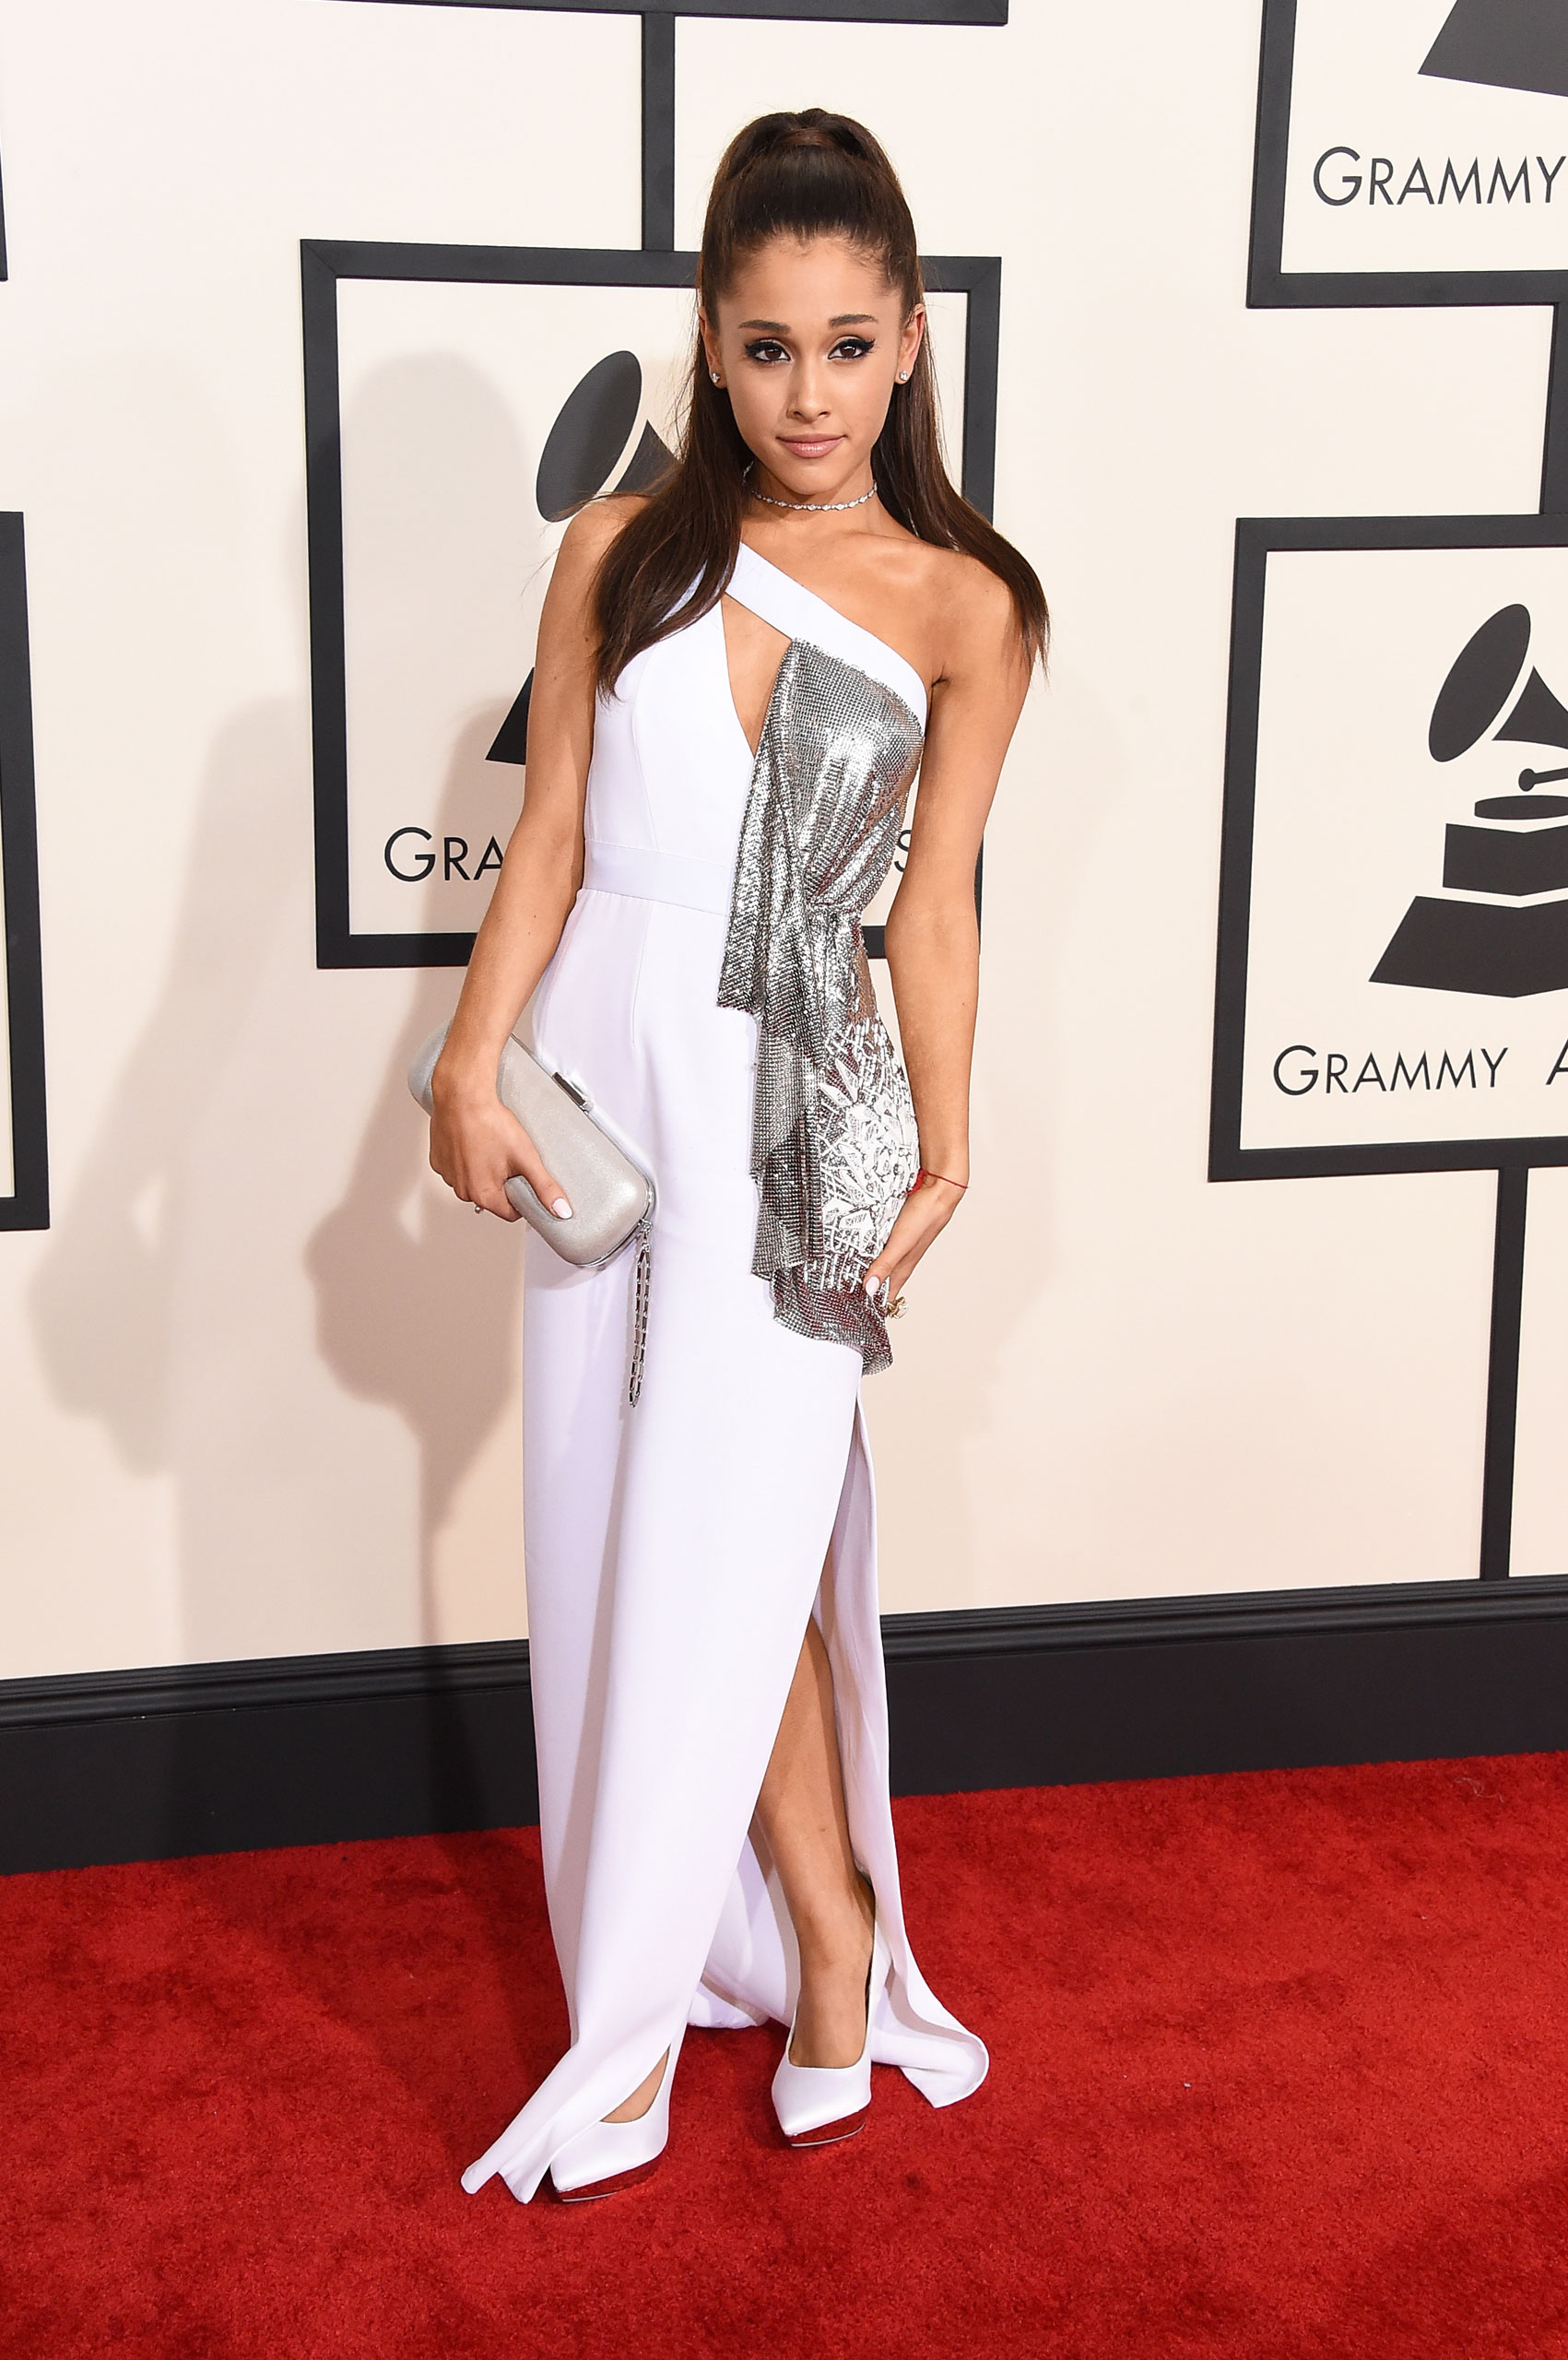 Ariana Grande attends the 57th Annual Grammy Awards at the Staples Center on Feb. 8, 2015 in Los Angeles, Calif.